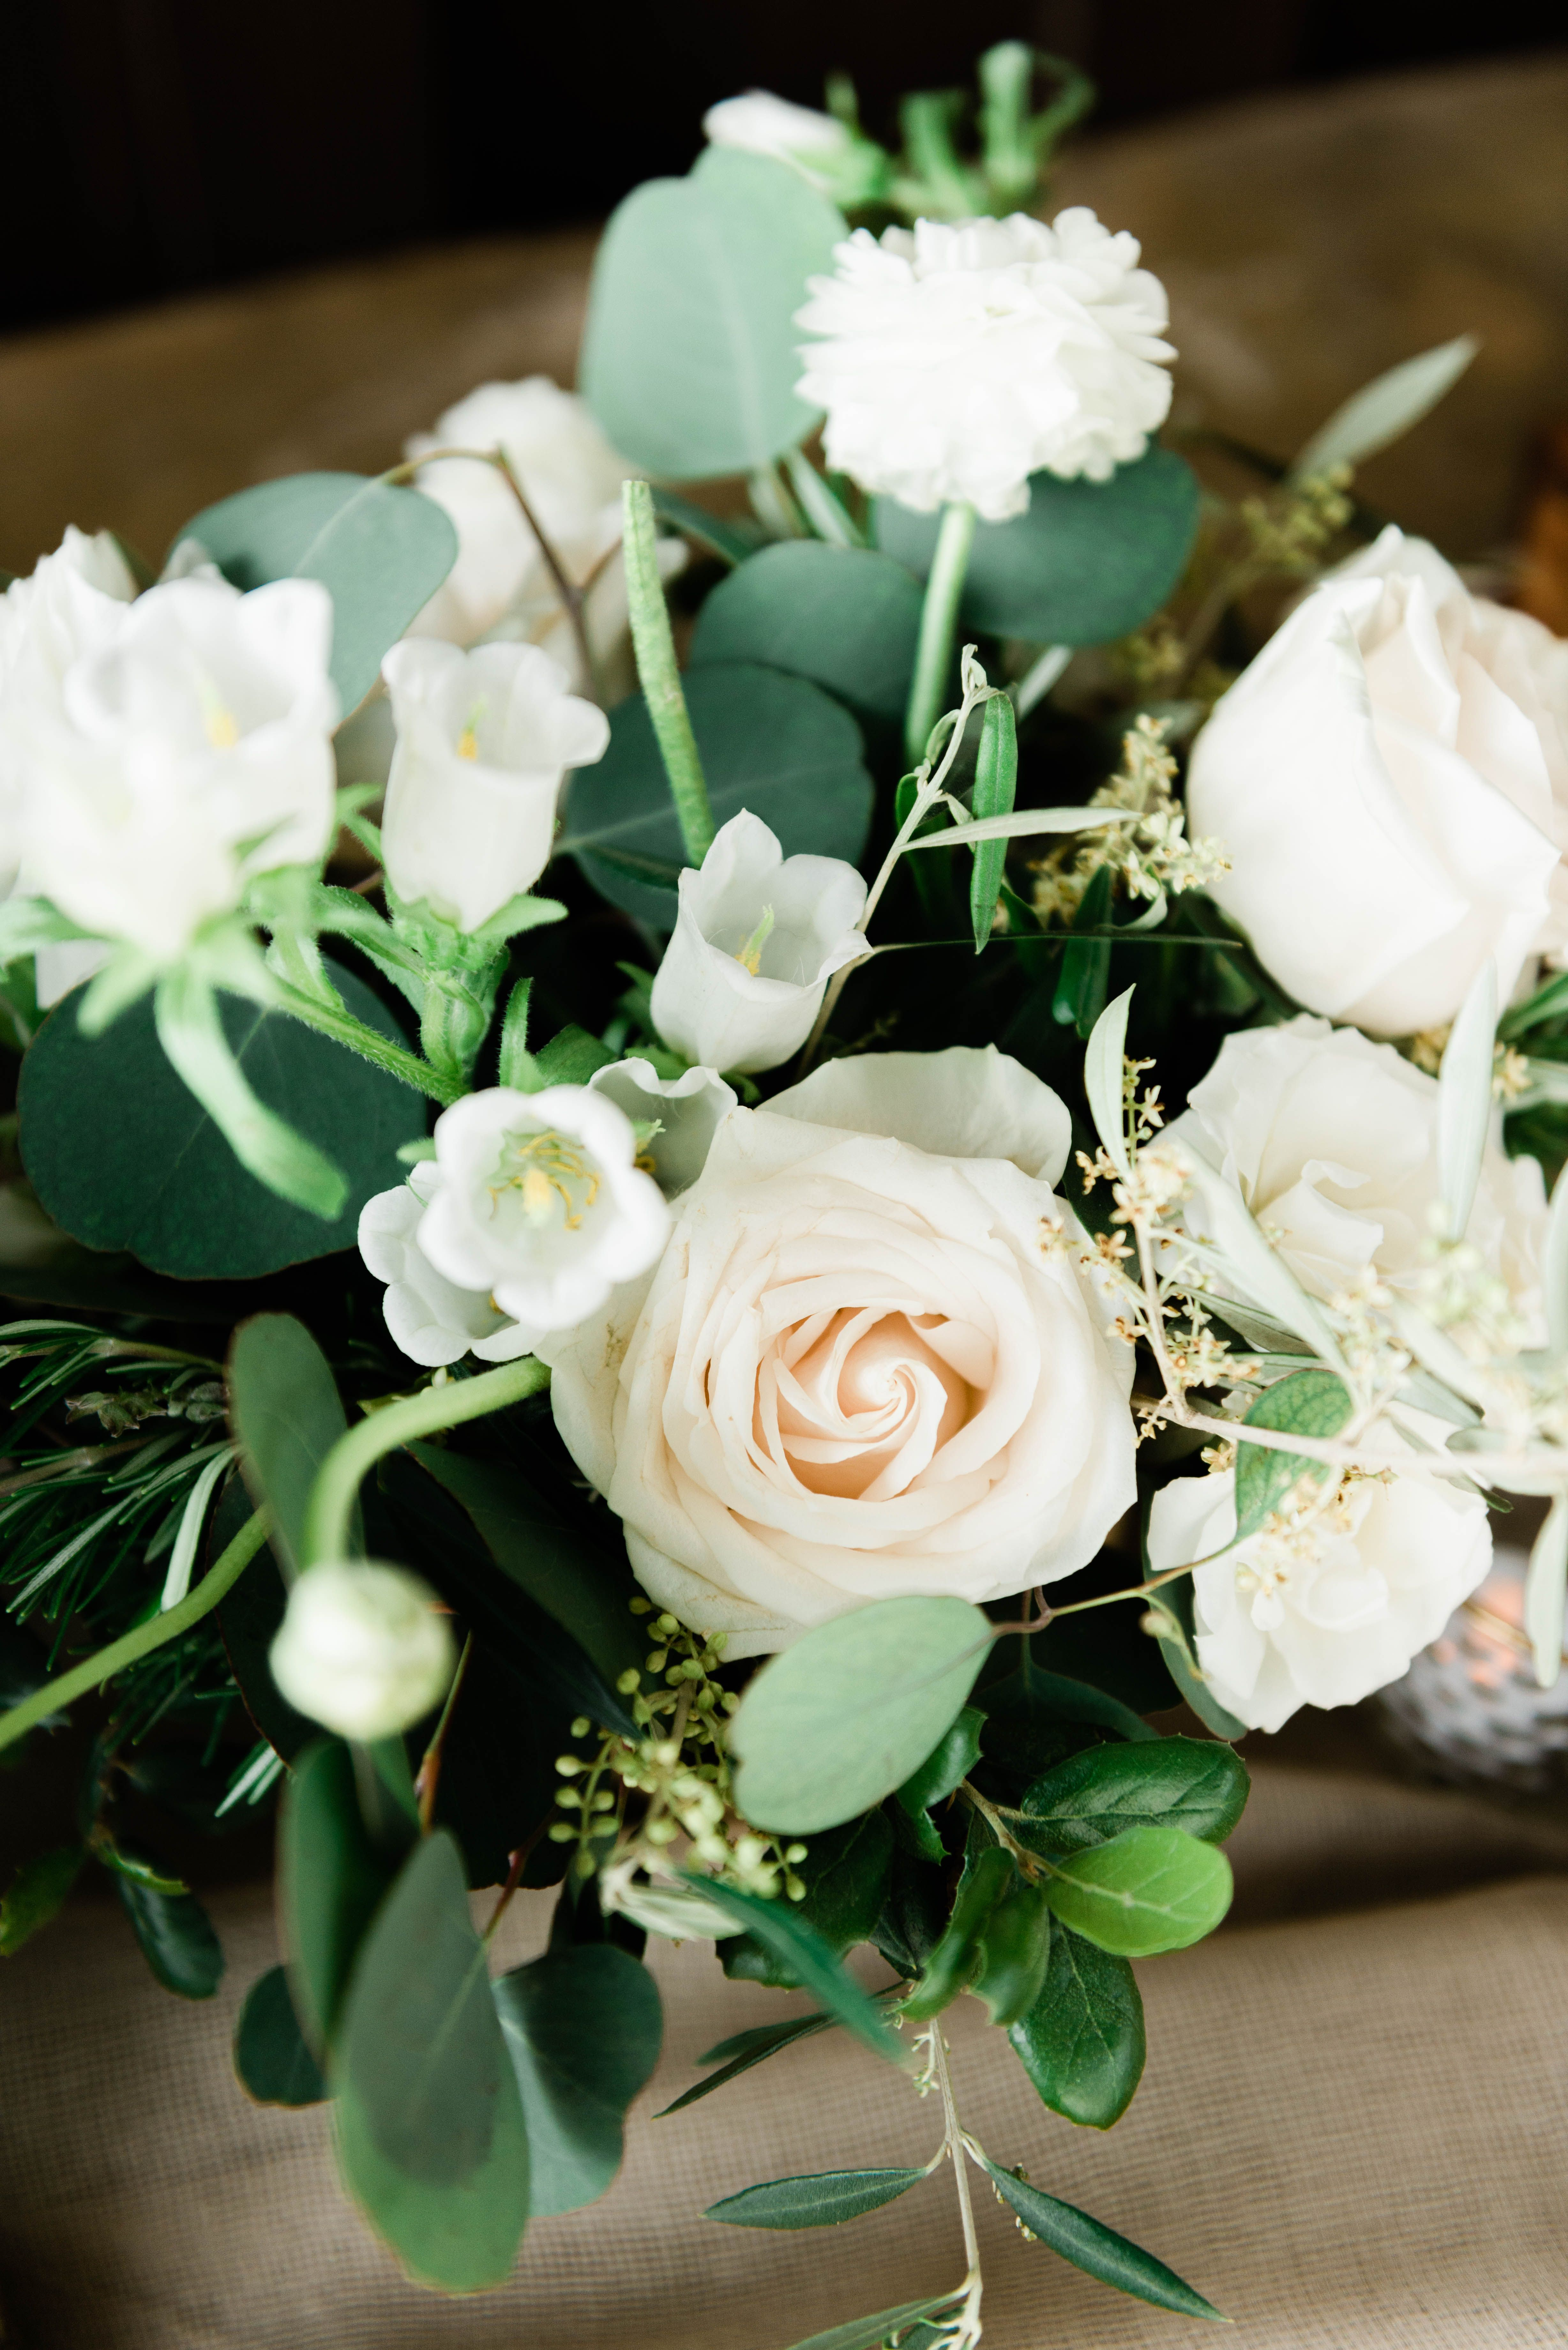 This Flower Arrangement Is The Epitome Of Elegance Perfect For